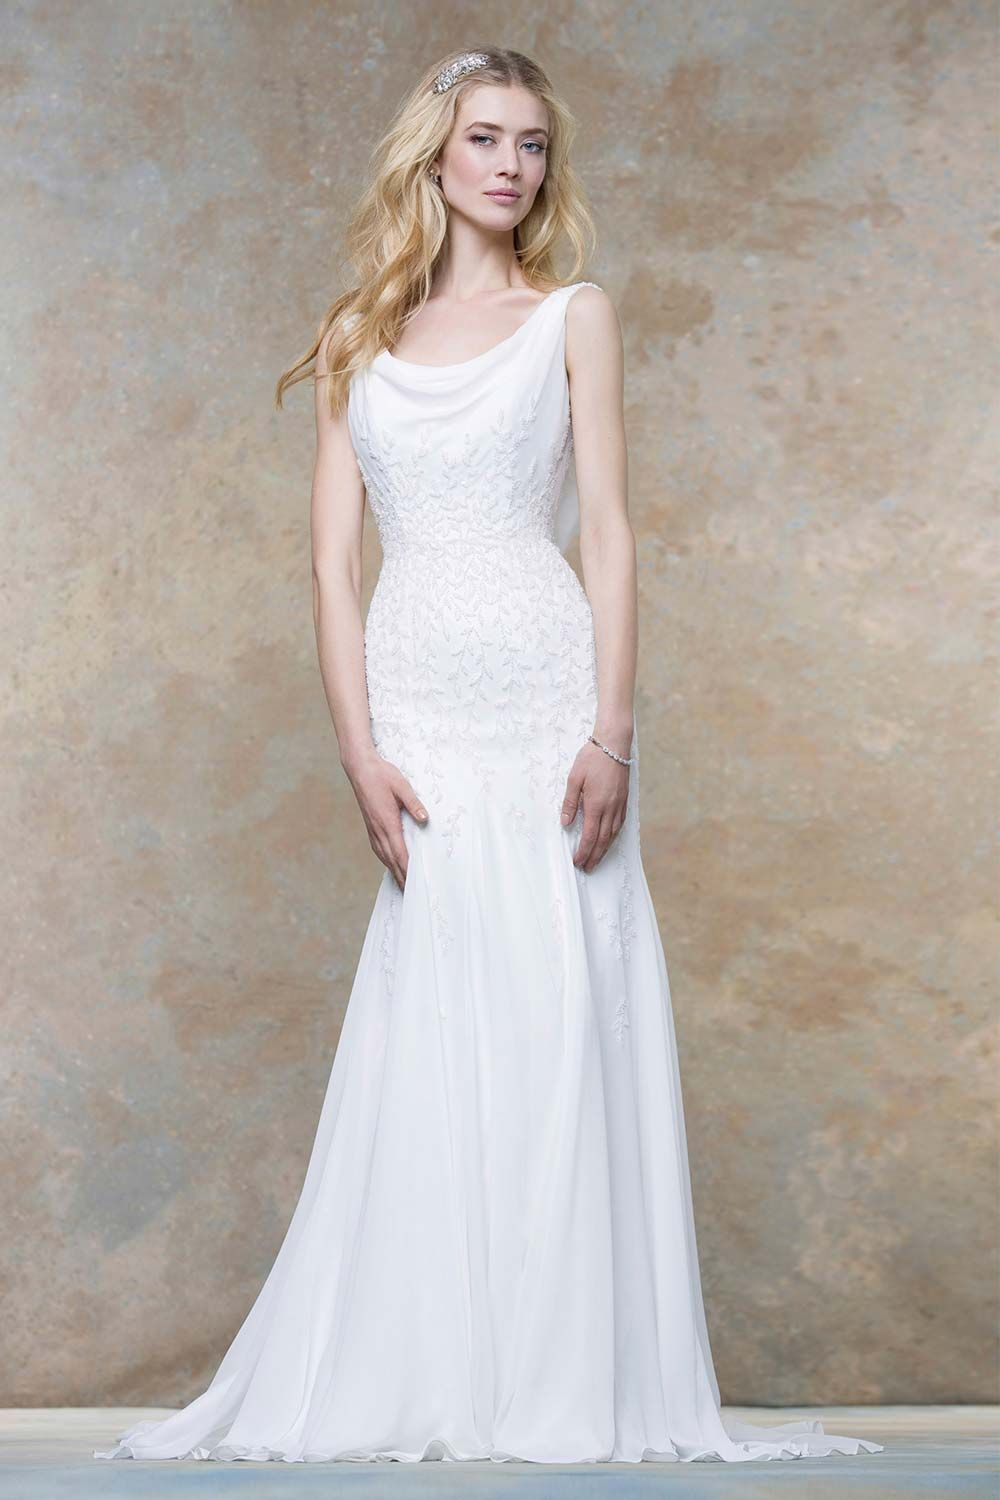 Vintage style wedding dresses gorgeous gowns inspired by past eras